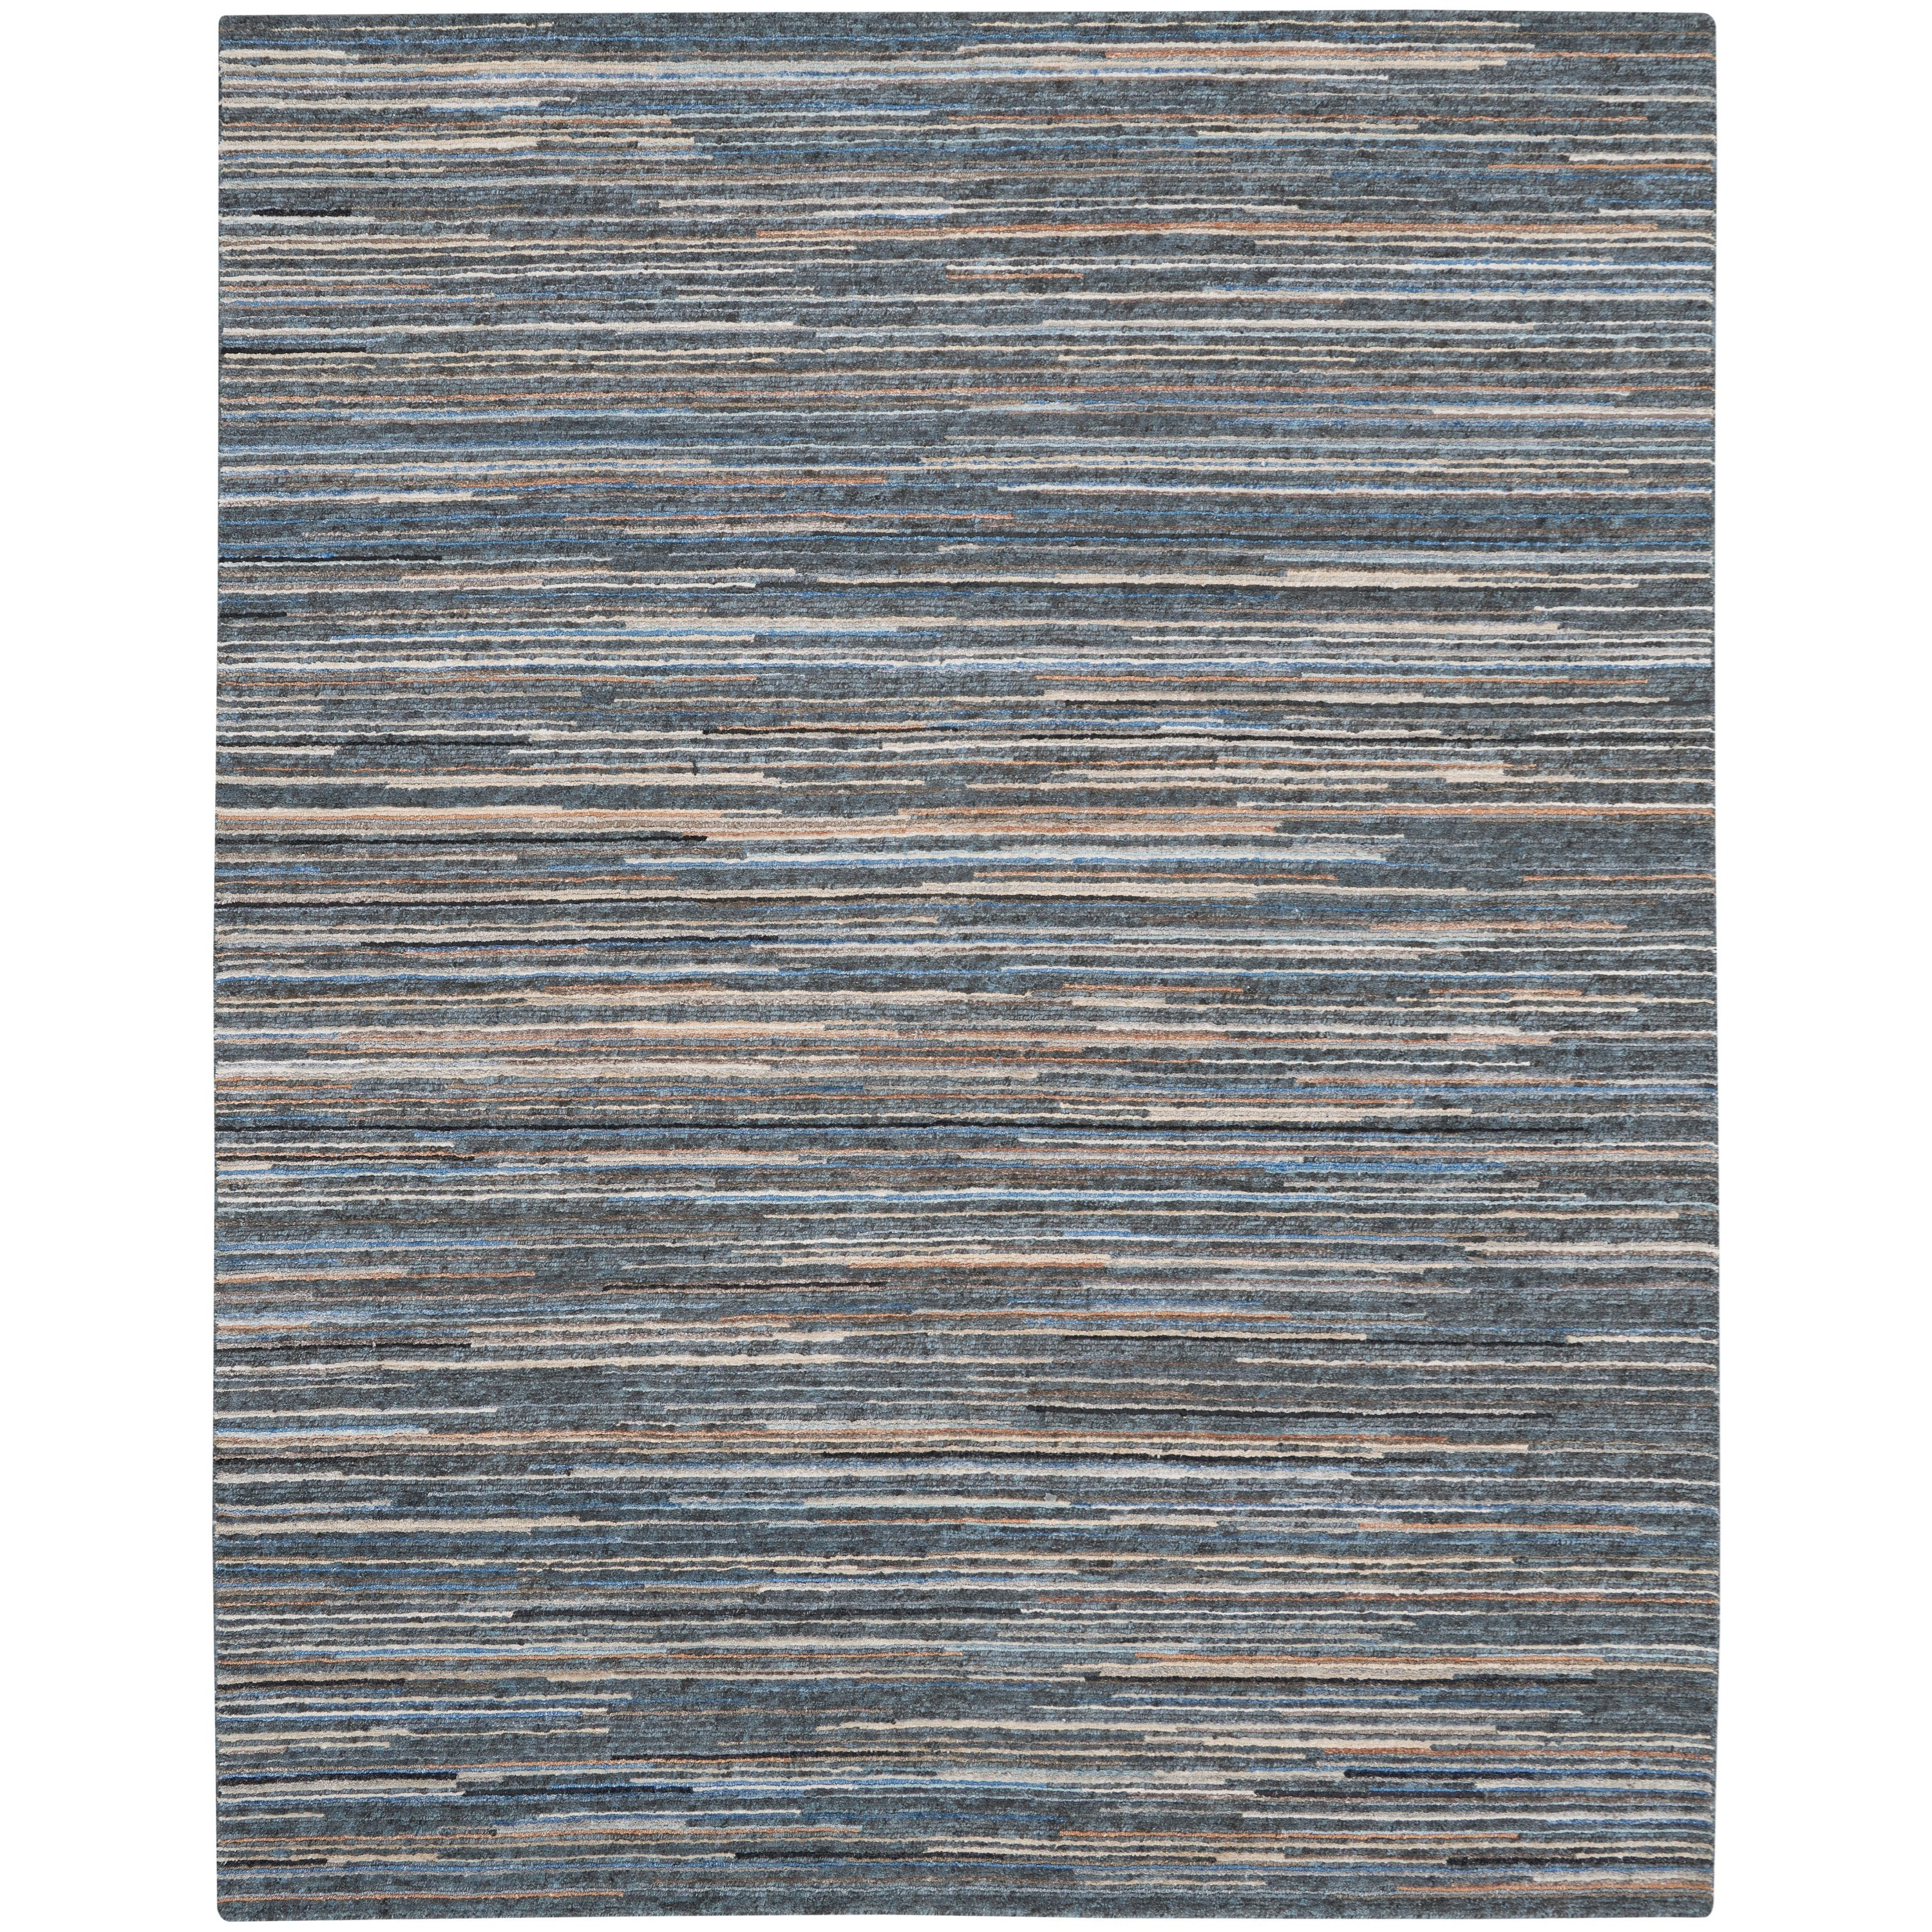 Plateau 2020 8' x 10' Rug by Nourison at Home Collections Furniture